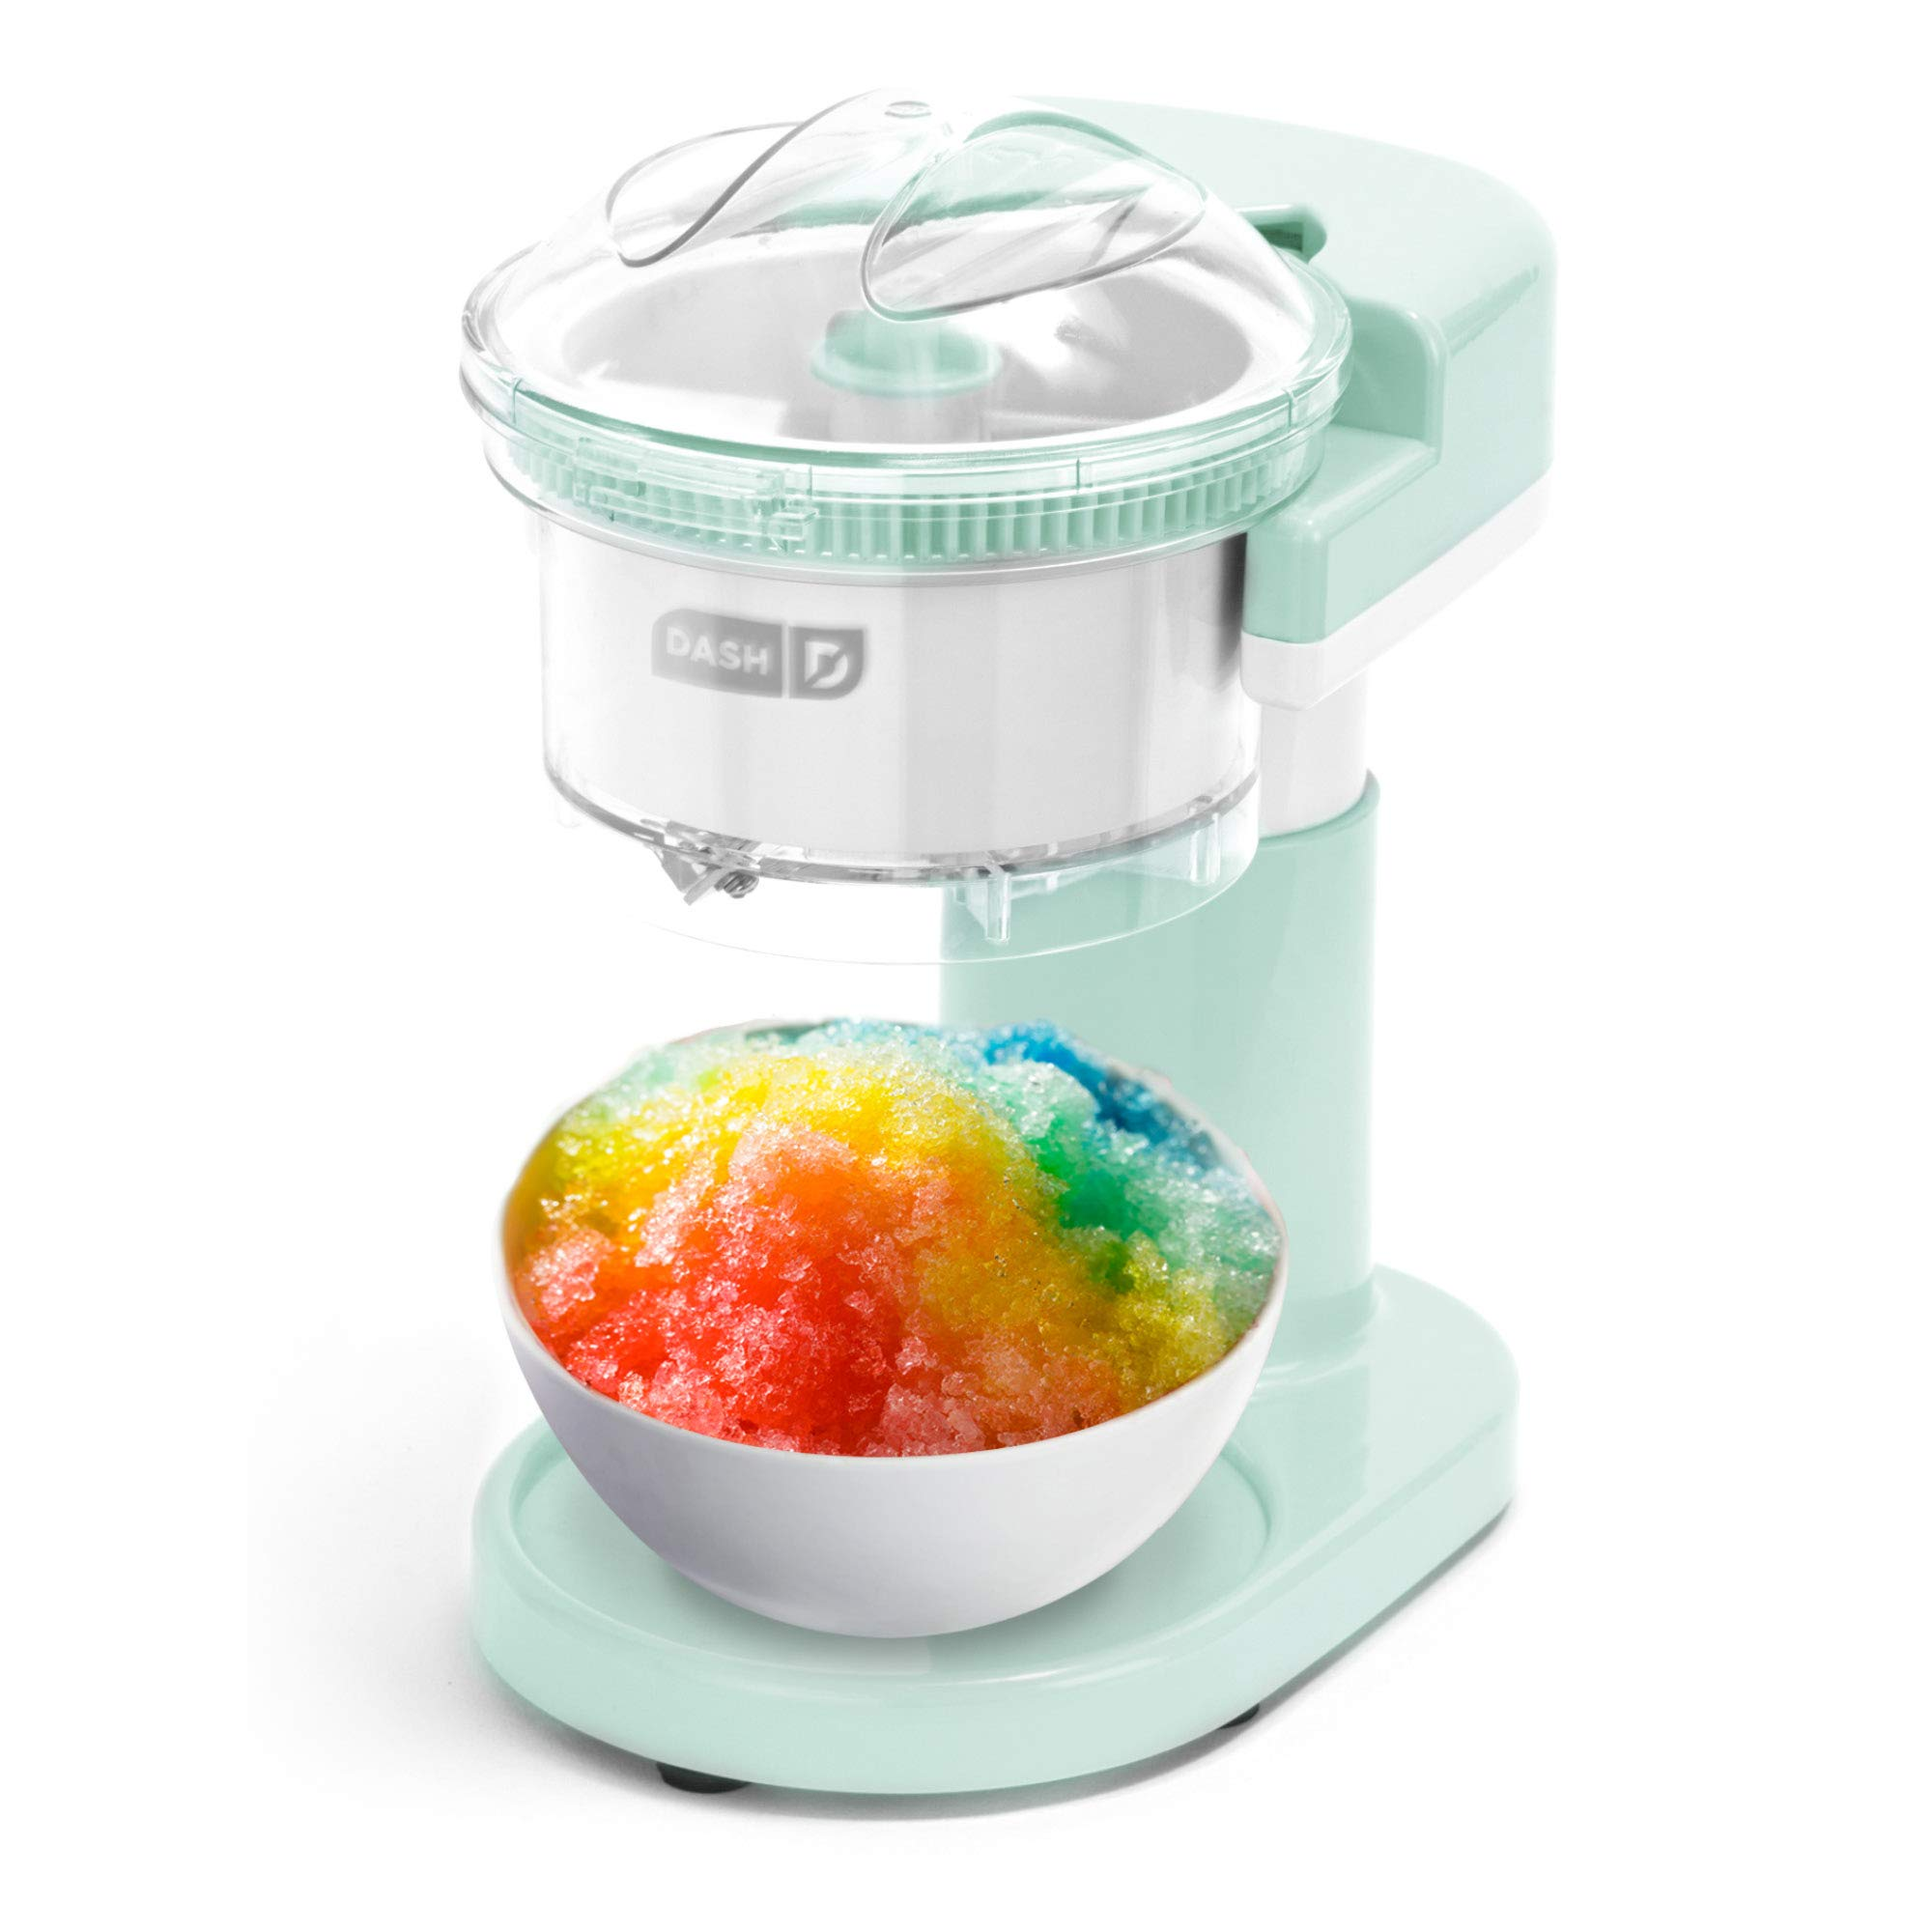 Dash DSIM100GBAQ02 Shaved Ice Maker + Slushie Machine with with Stainless Steel Blades for Snow Cone, Margarita + Frozen Cocktails, Organic, Sugar Free, Flavored Healthy Snacks for Kids & Adults, Aqua by DASH